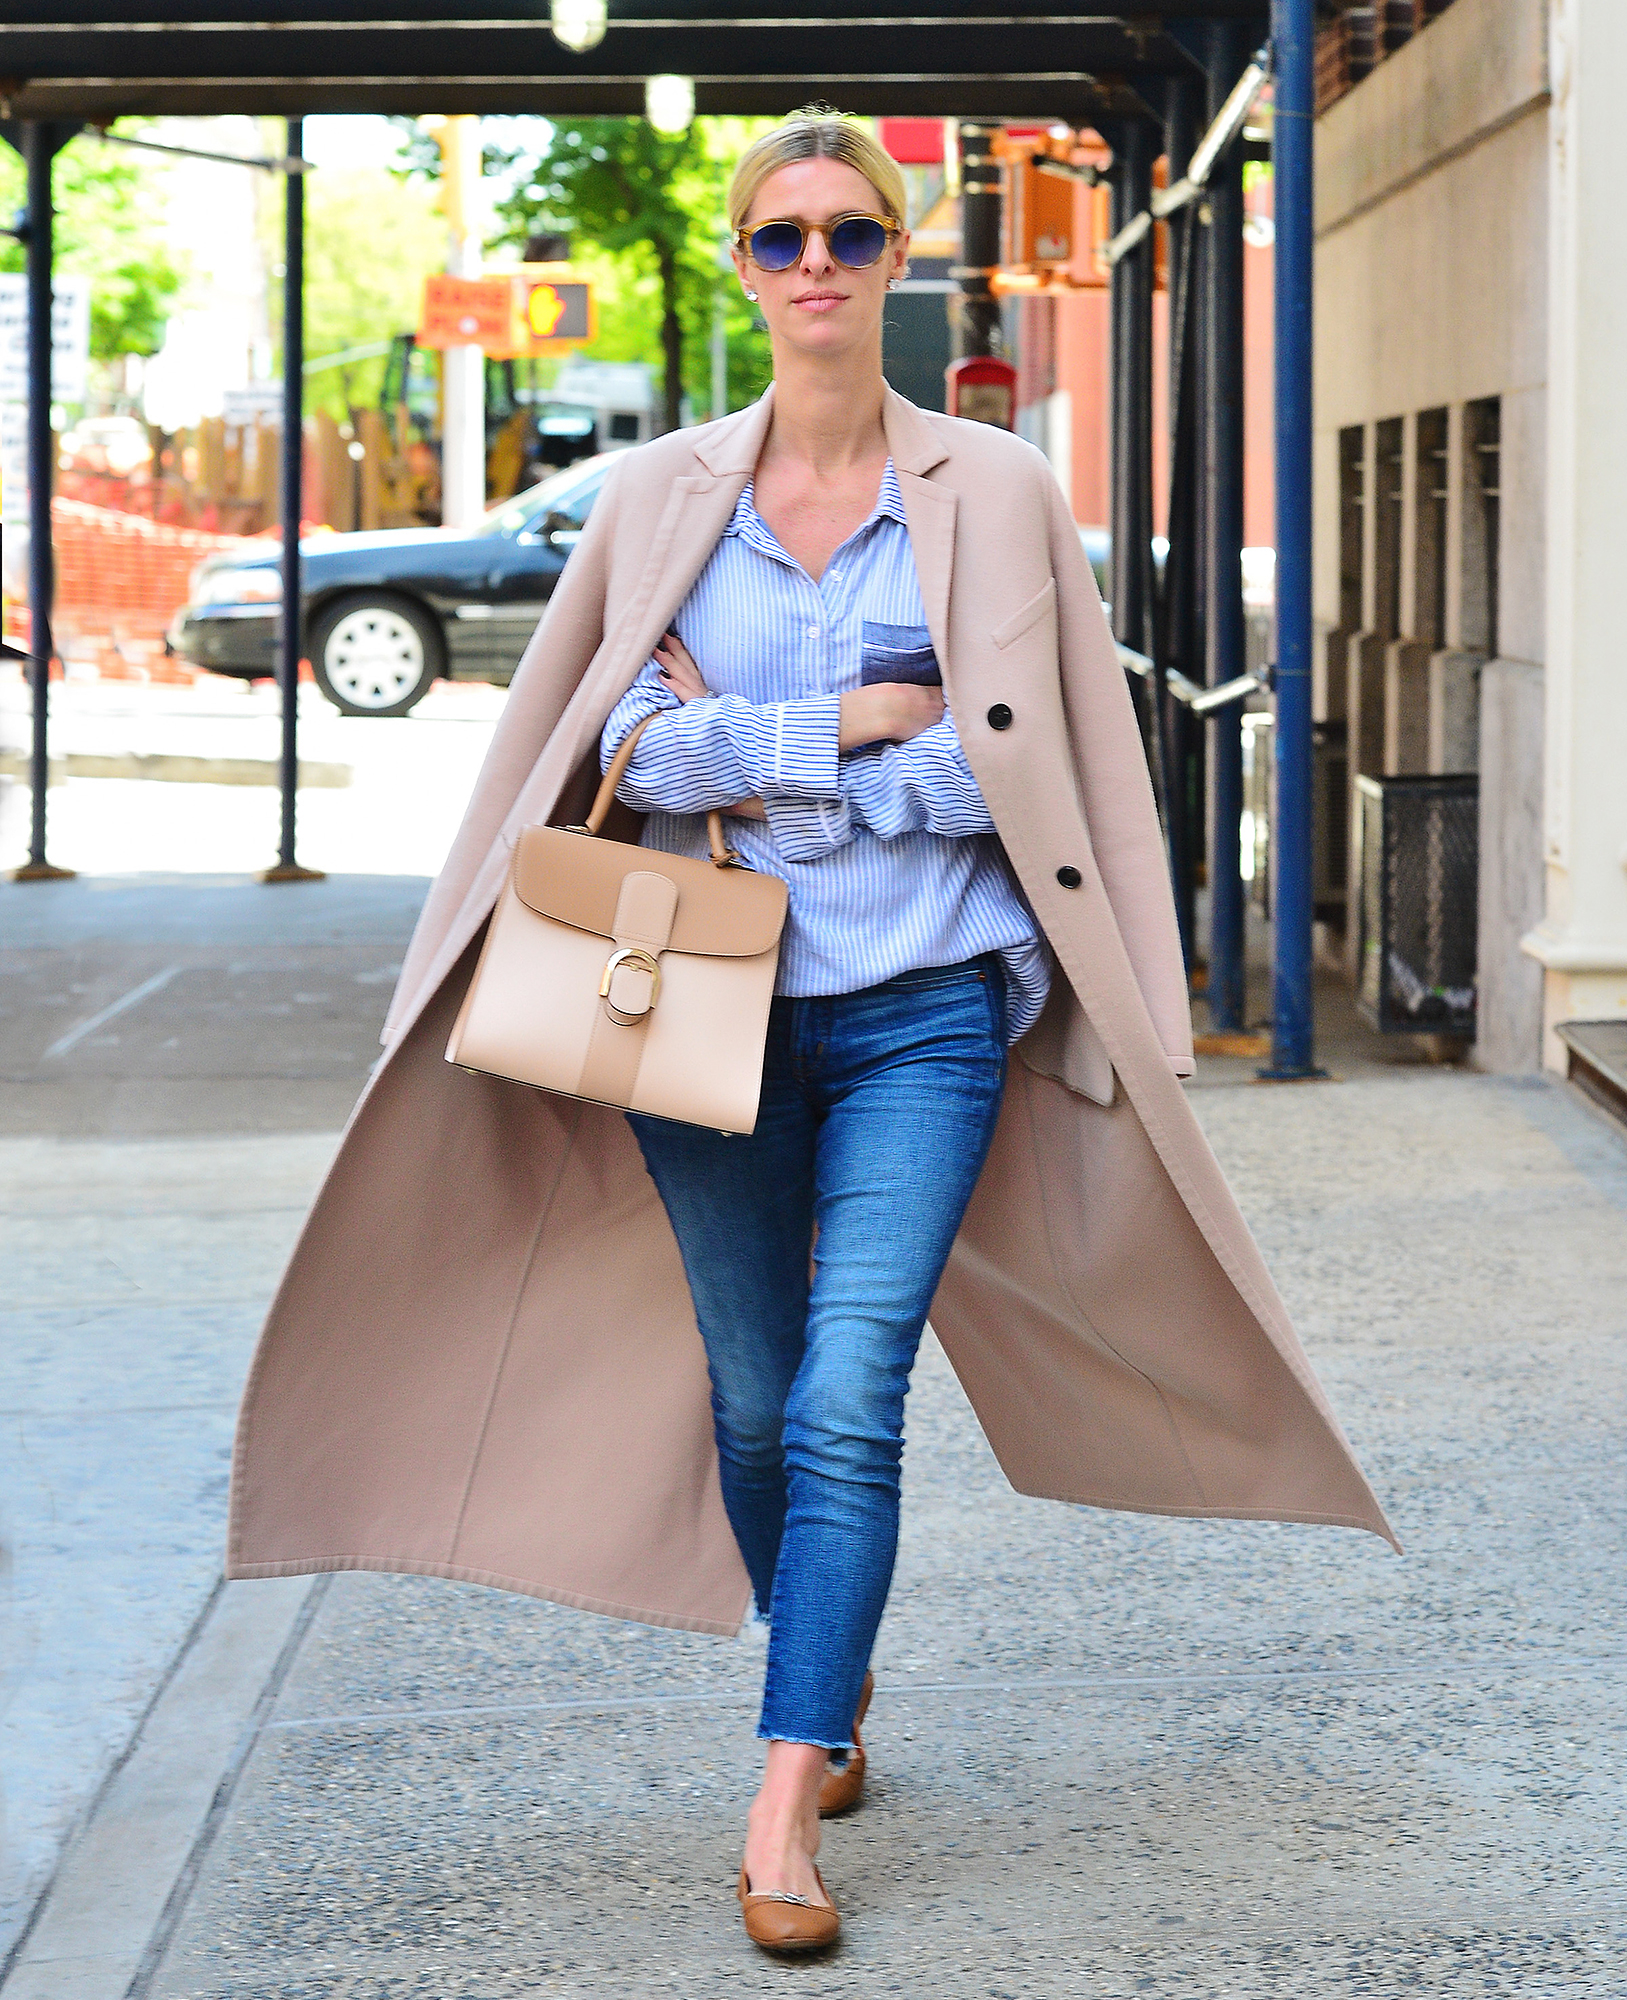 Nicky Hilton looking stylish as she steps out on a sunny day in NYC